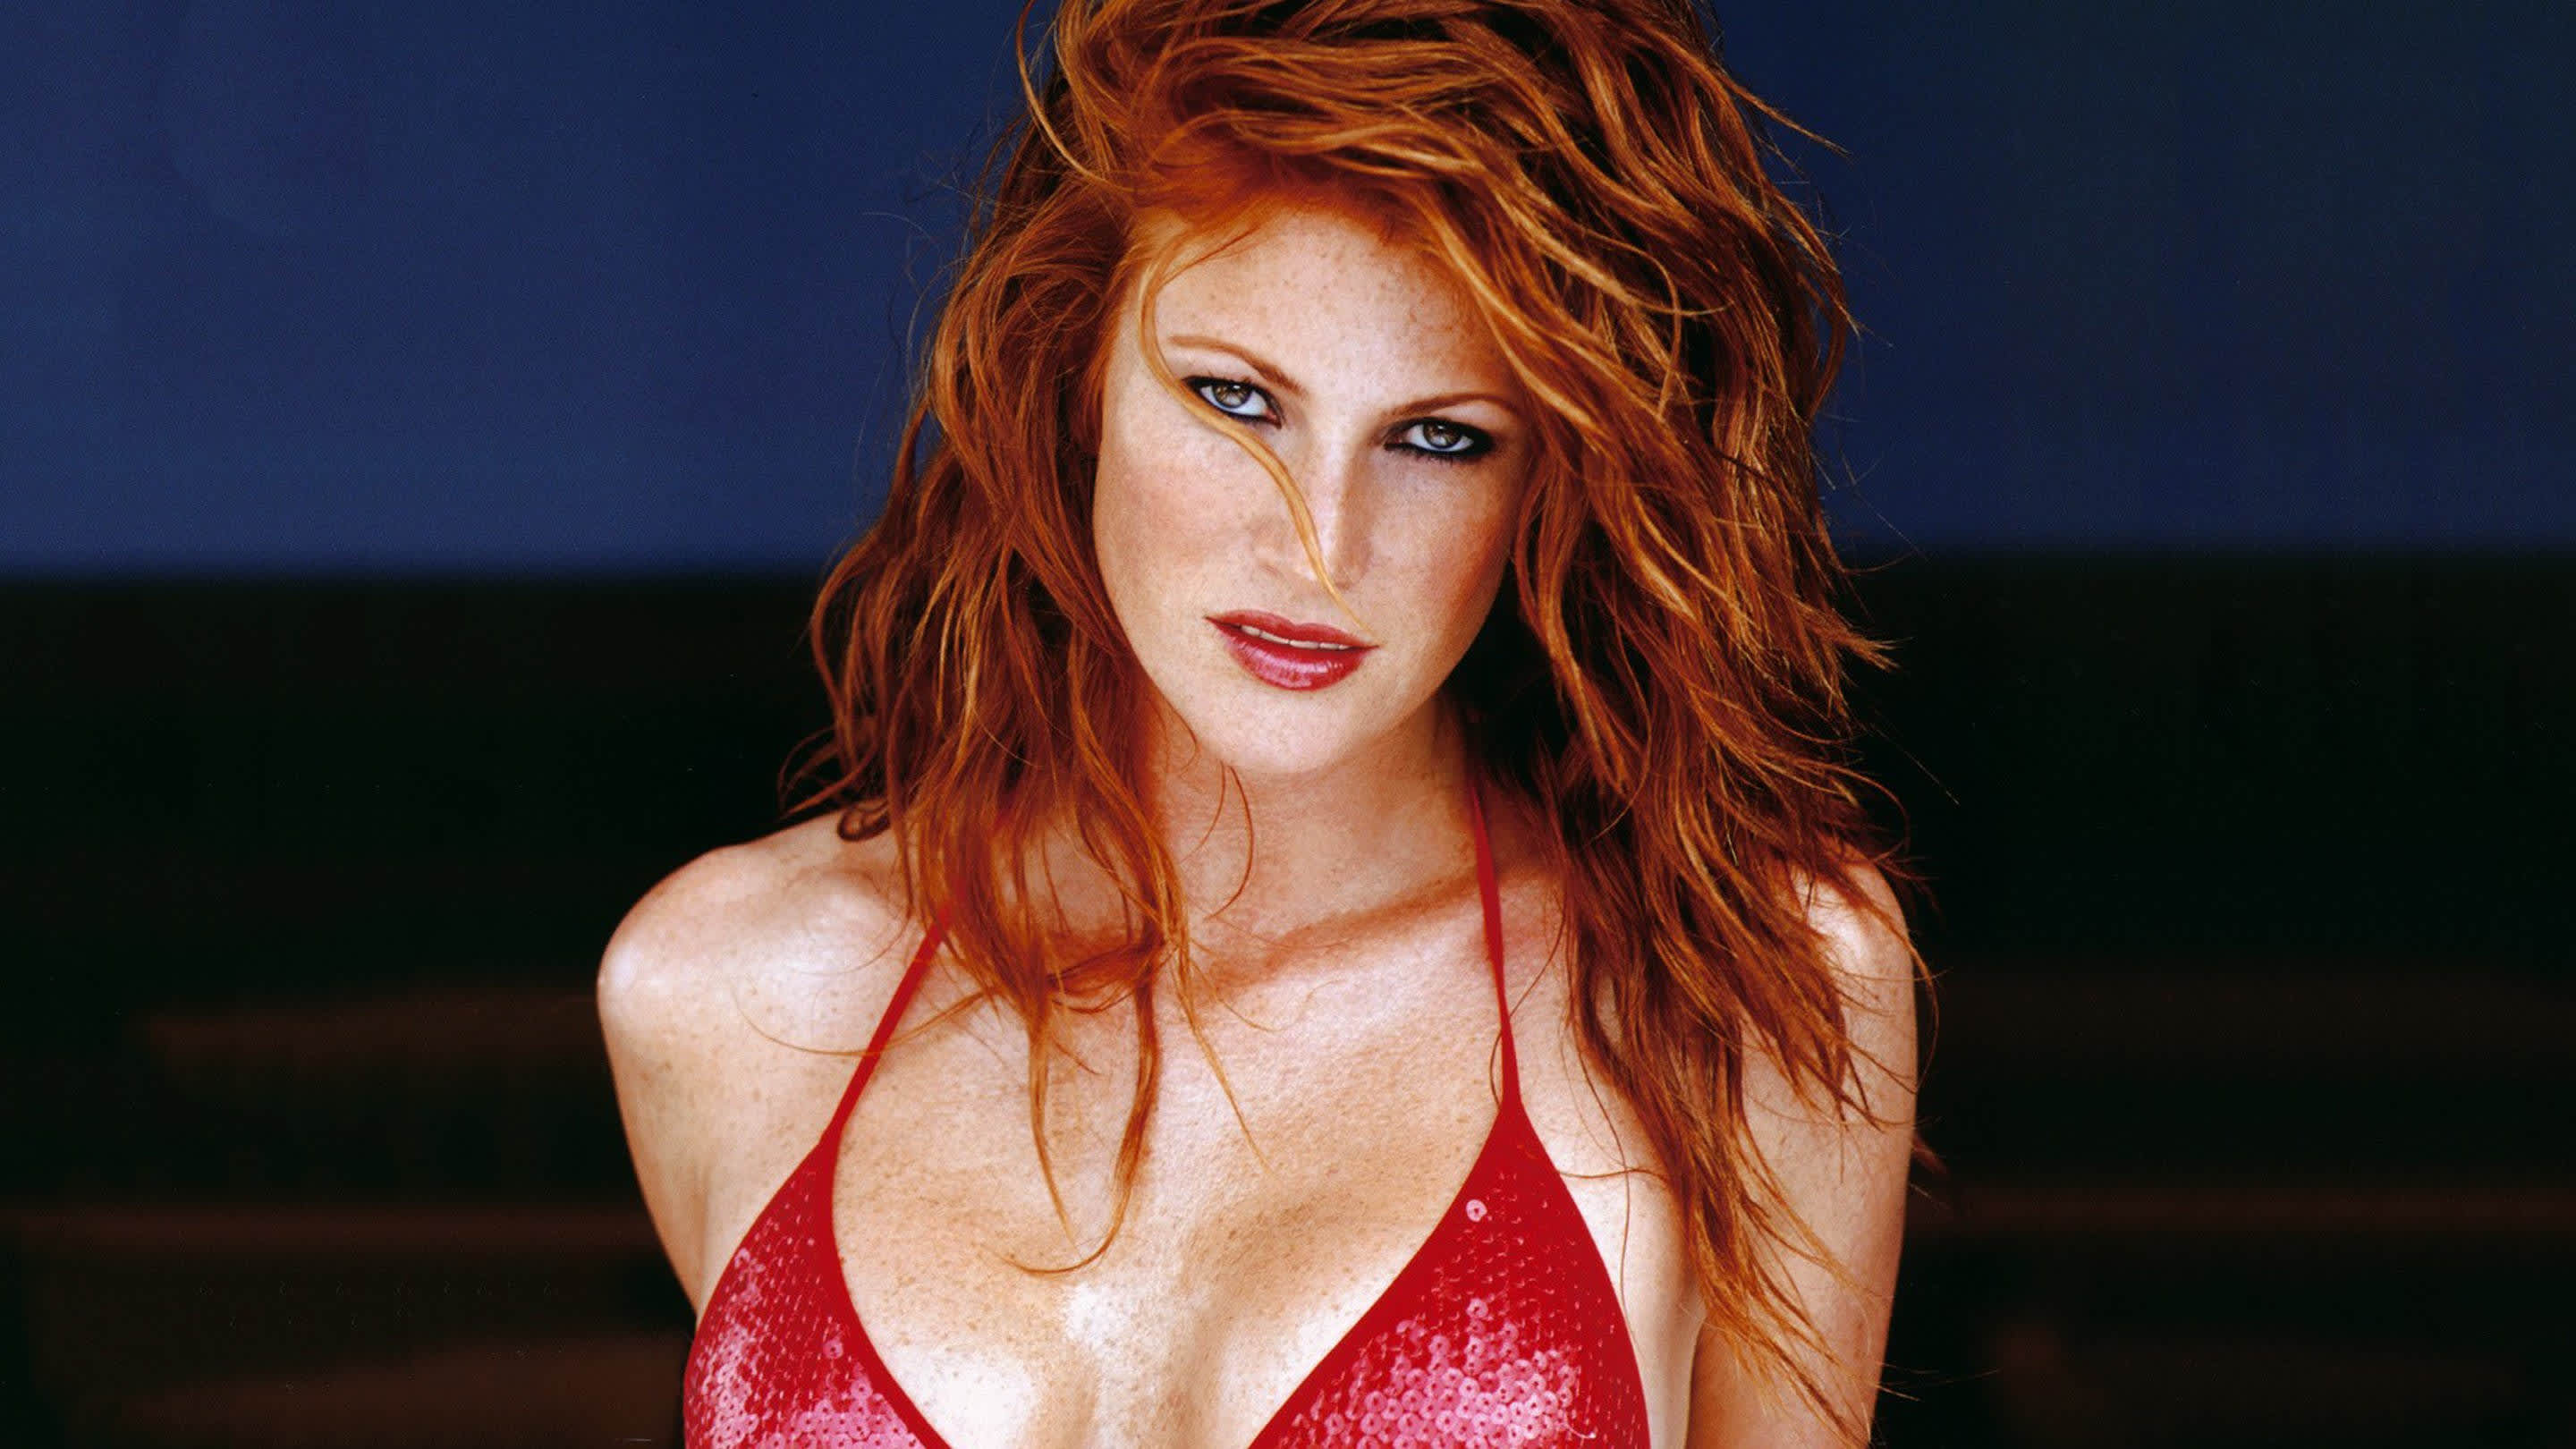 Angie Everhart Playboy angie everhart